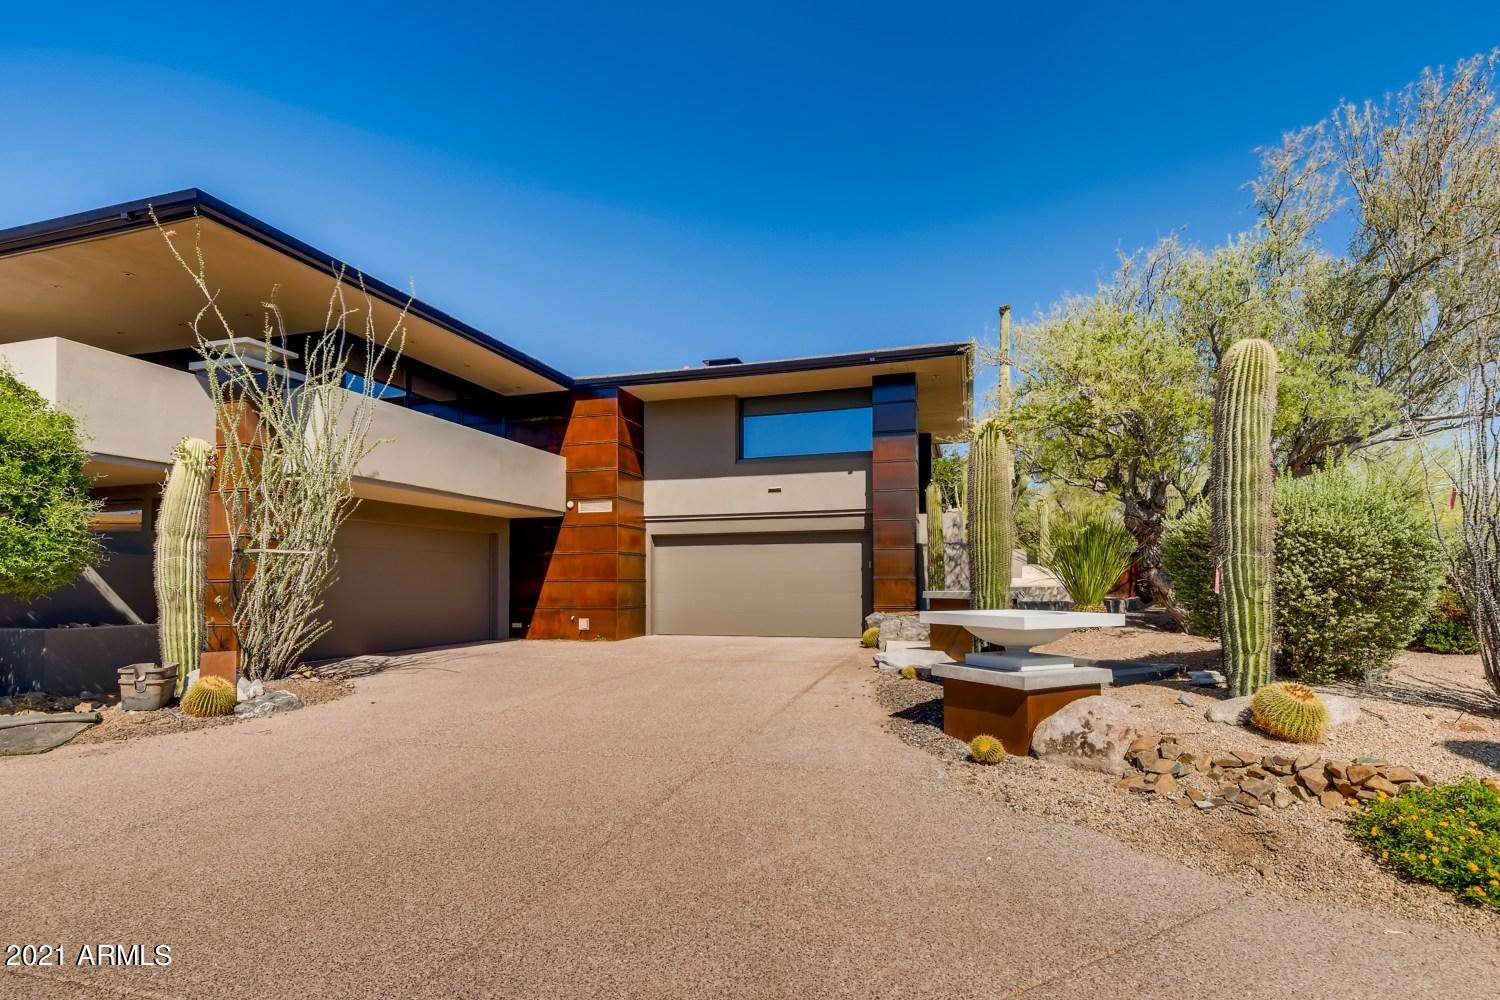 39935 N 98TH Way, Scottsdale, AZ 85262, 5 Bedrooms Bedrooms, ,Residential Lease,For Rent,39935 N 98TH Way,6257249